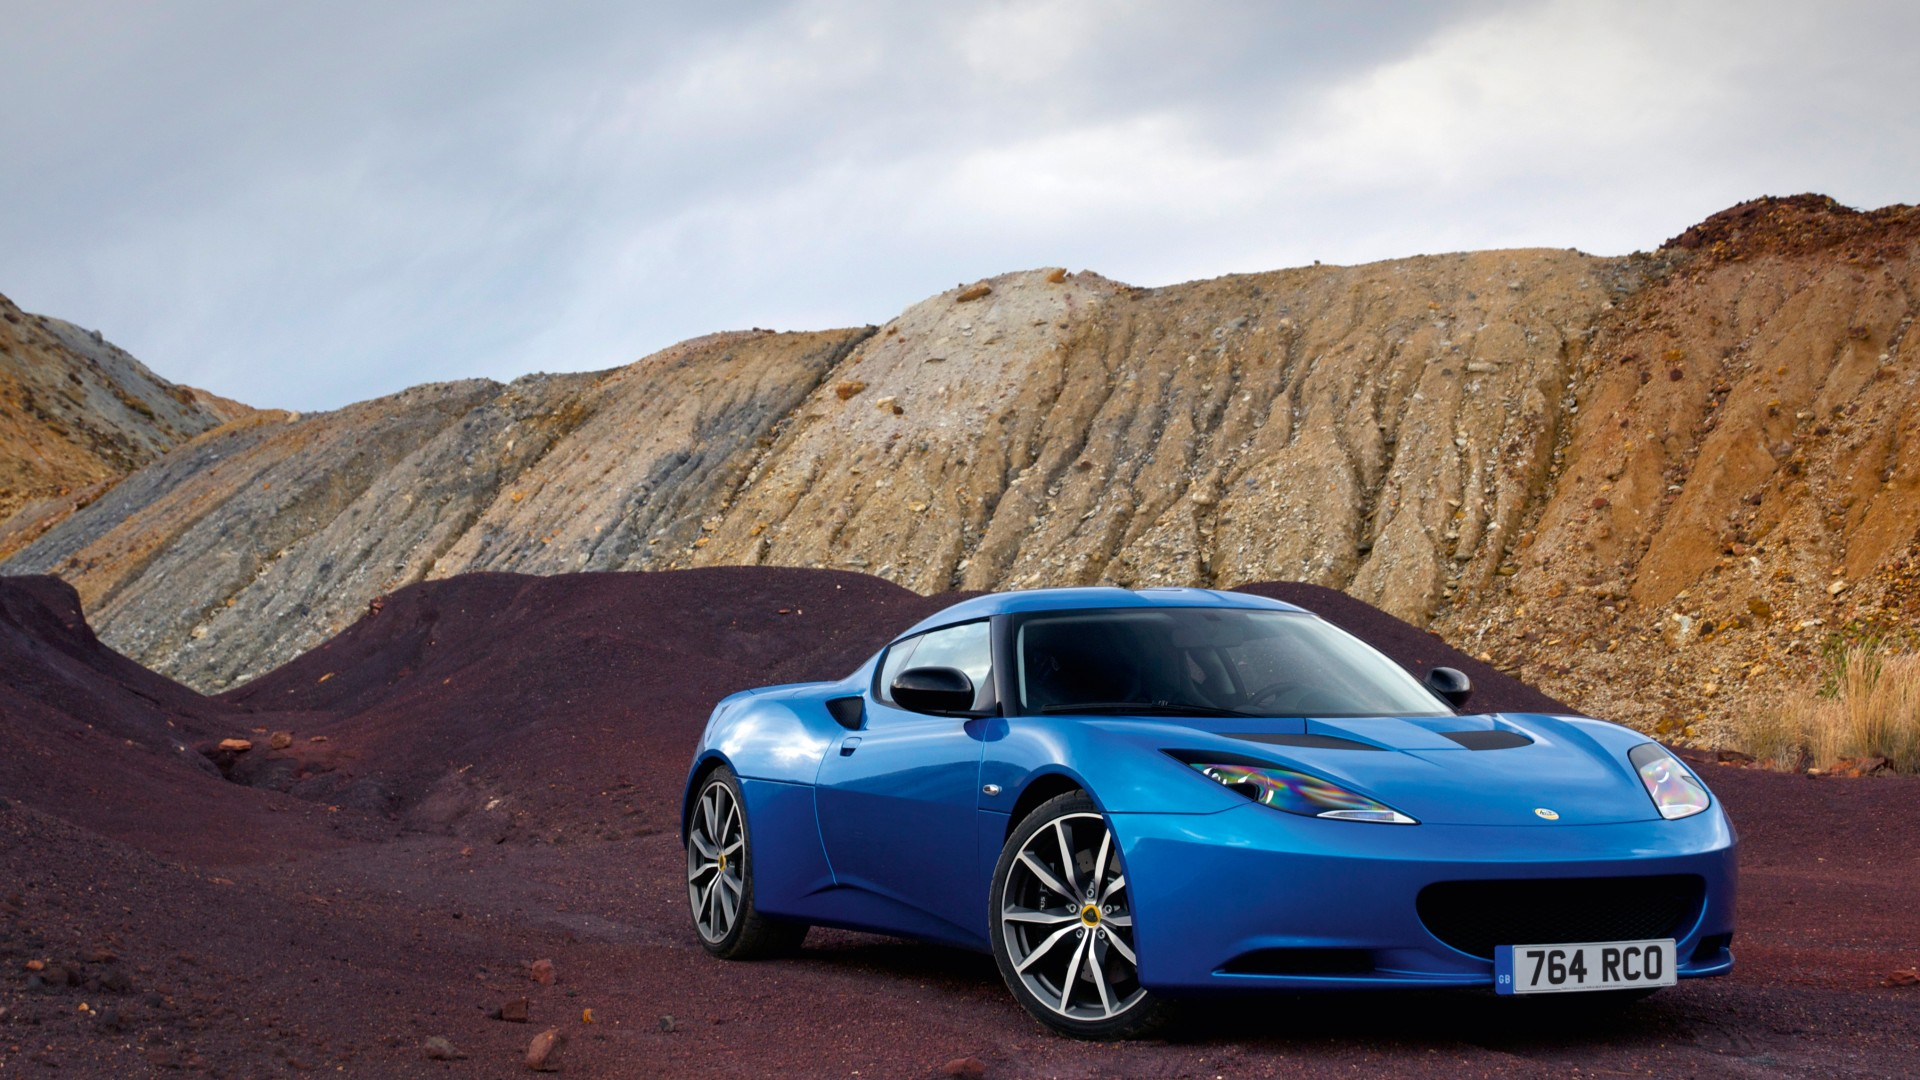 Lotus Evora S, supercar, Lotus, sports car, mountain, luxury cars, blue, review, test drive, buy, rent (horizontal)